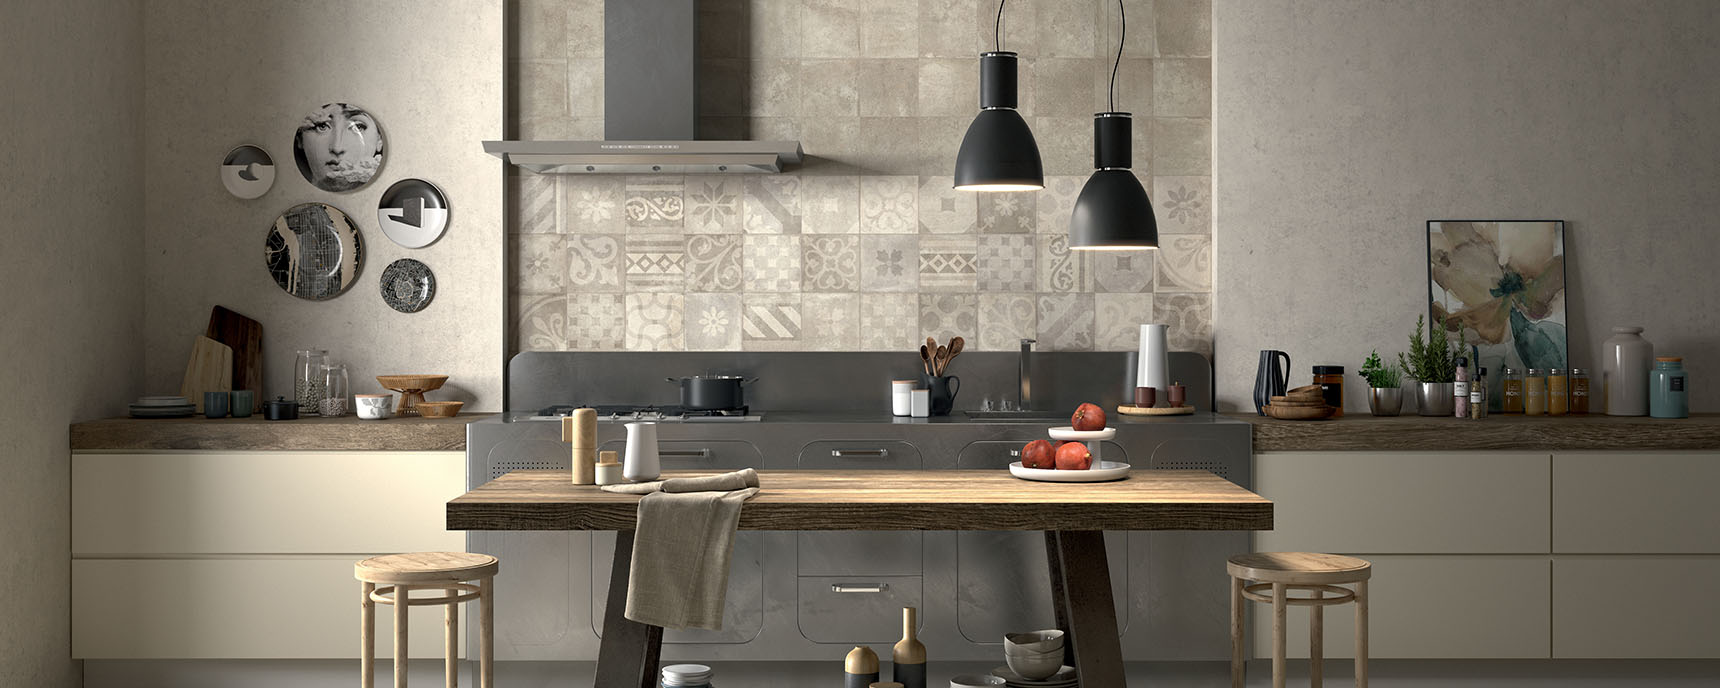 4 ideas and styles for the kitchen